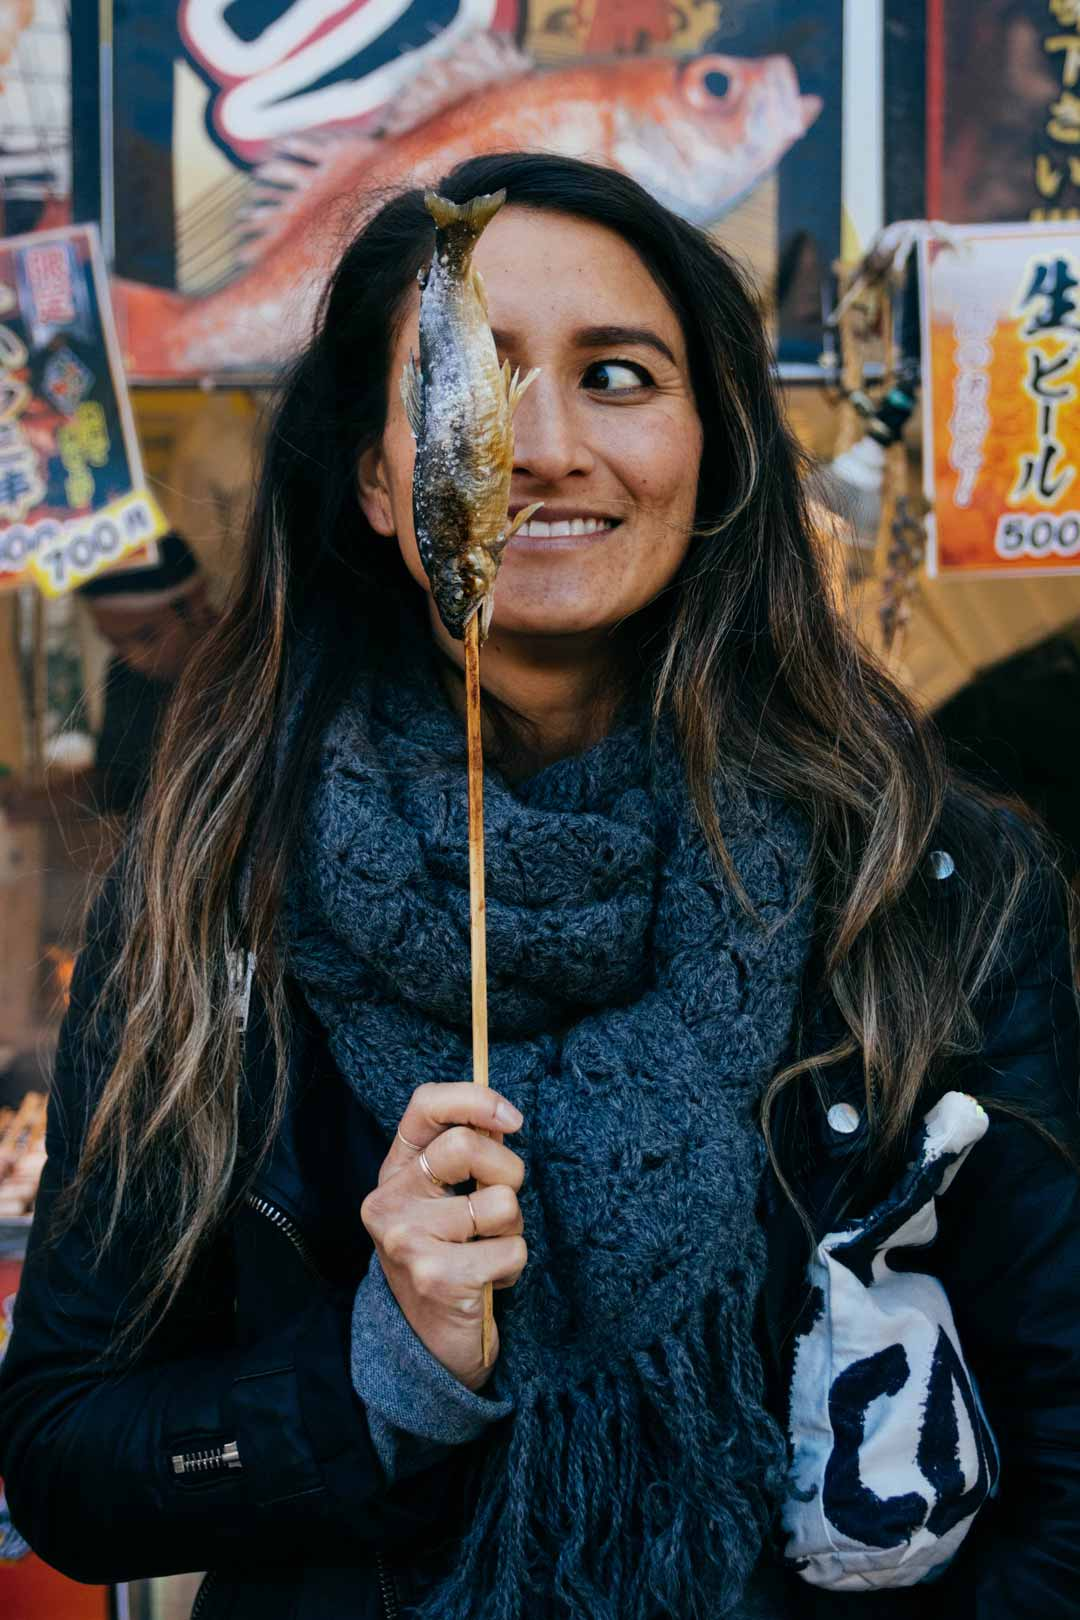 Woman holding fish on a stick in Japan.